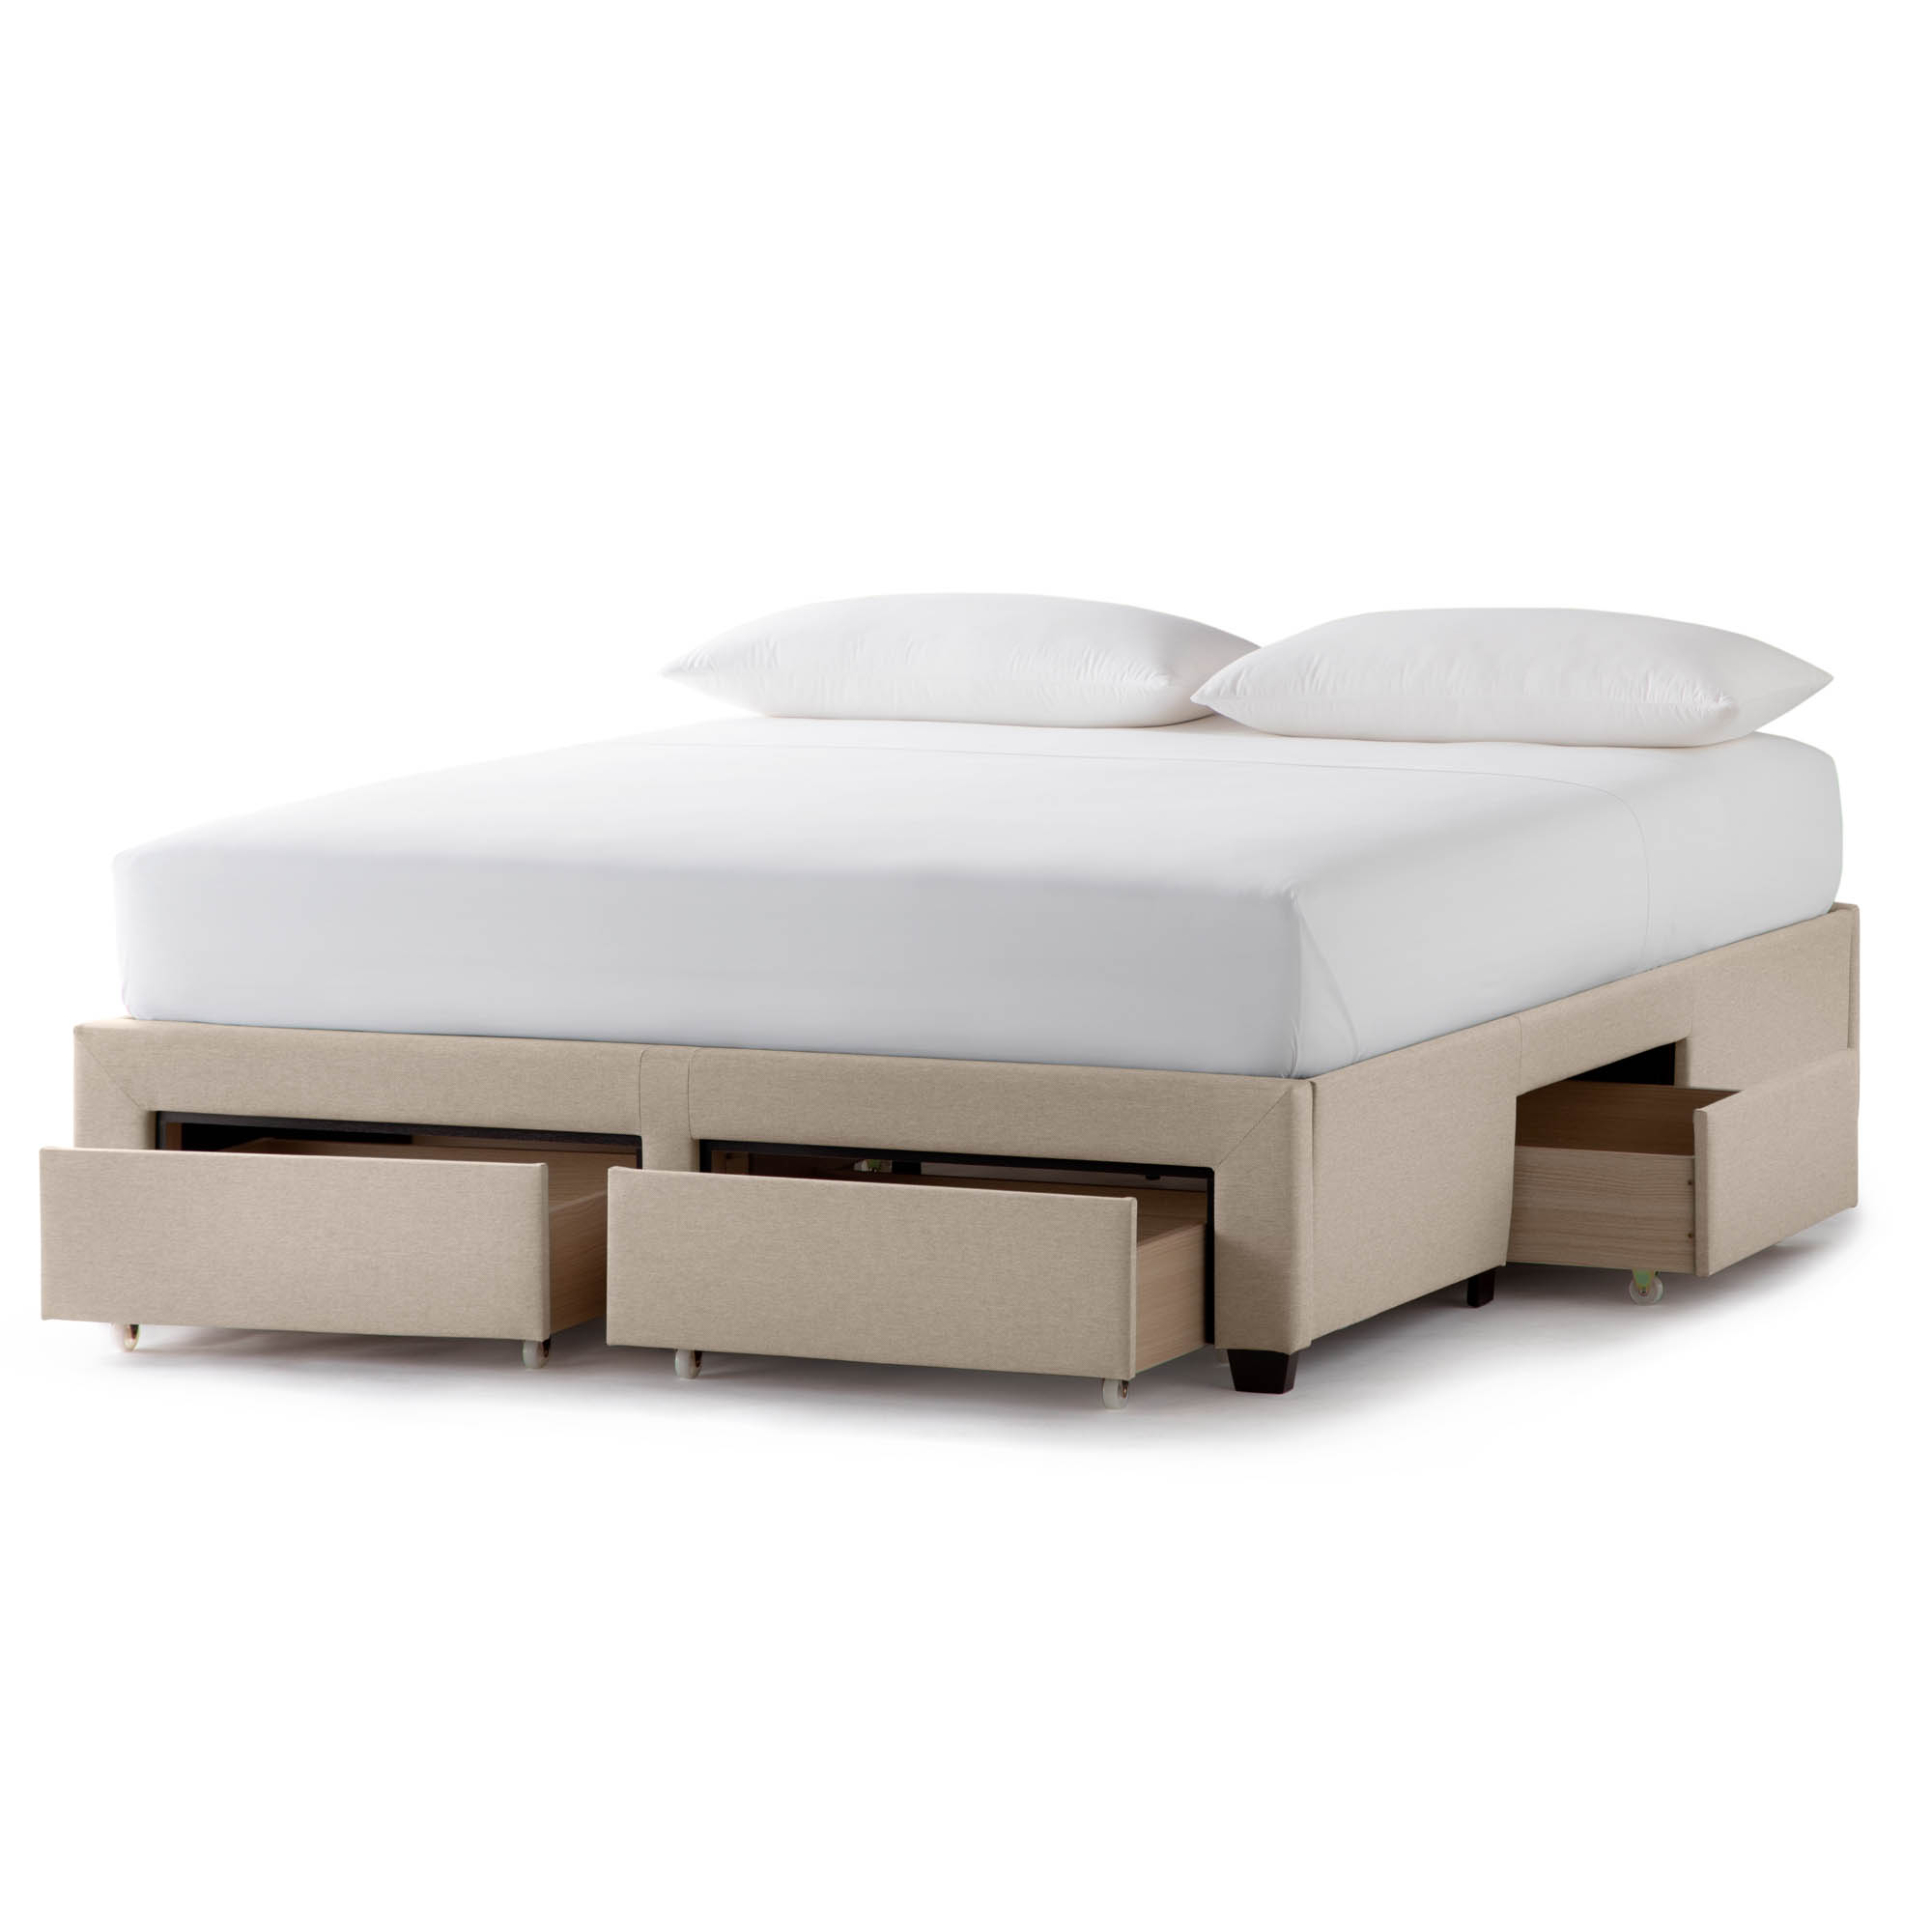 Malouf Watson Platform Bed Base Mattress Direct Pittsburgh